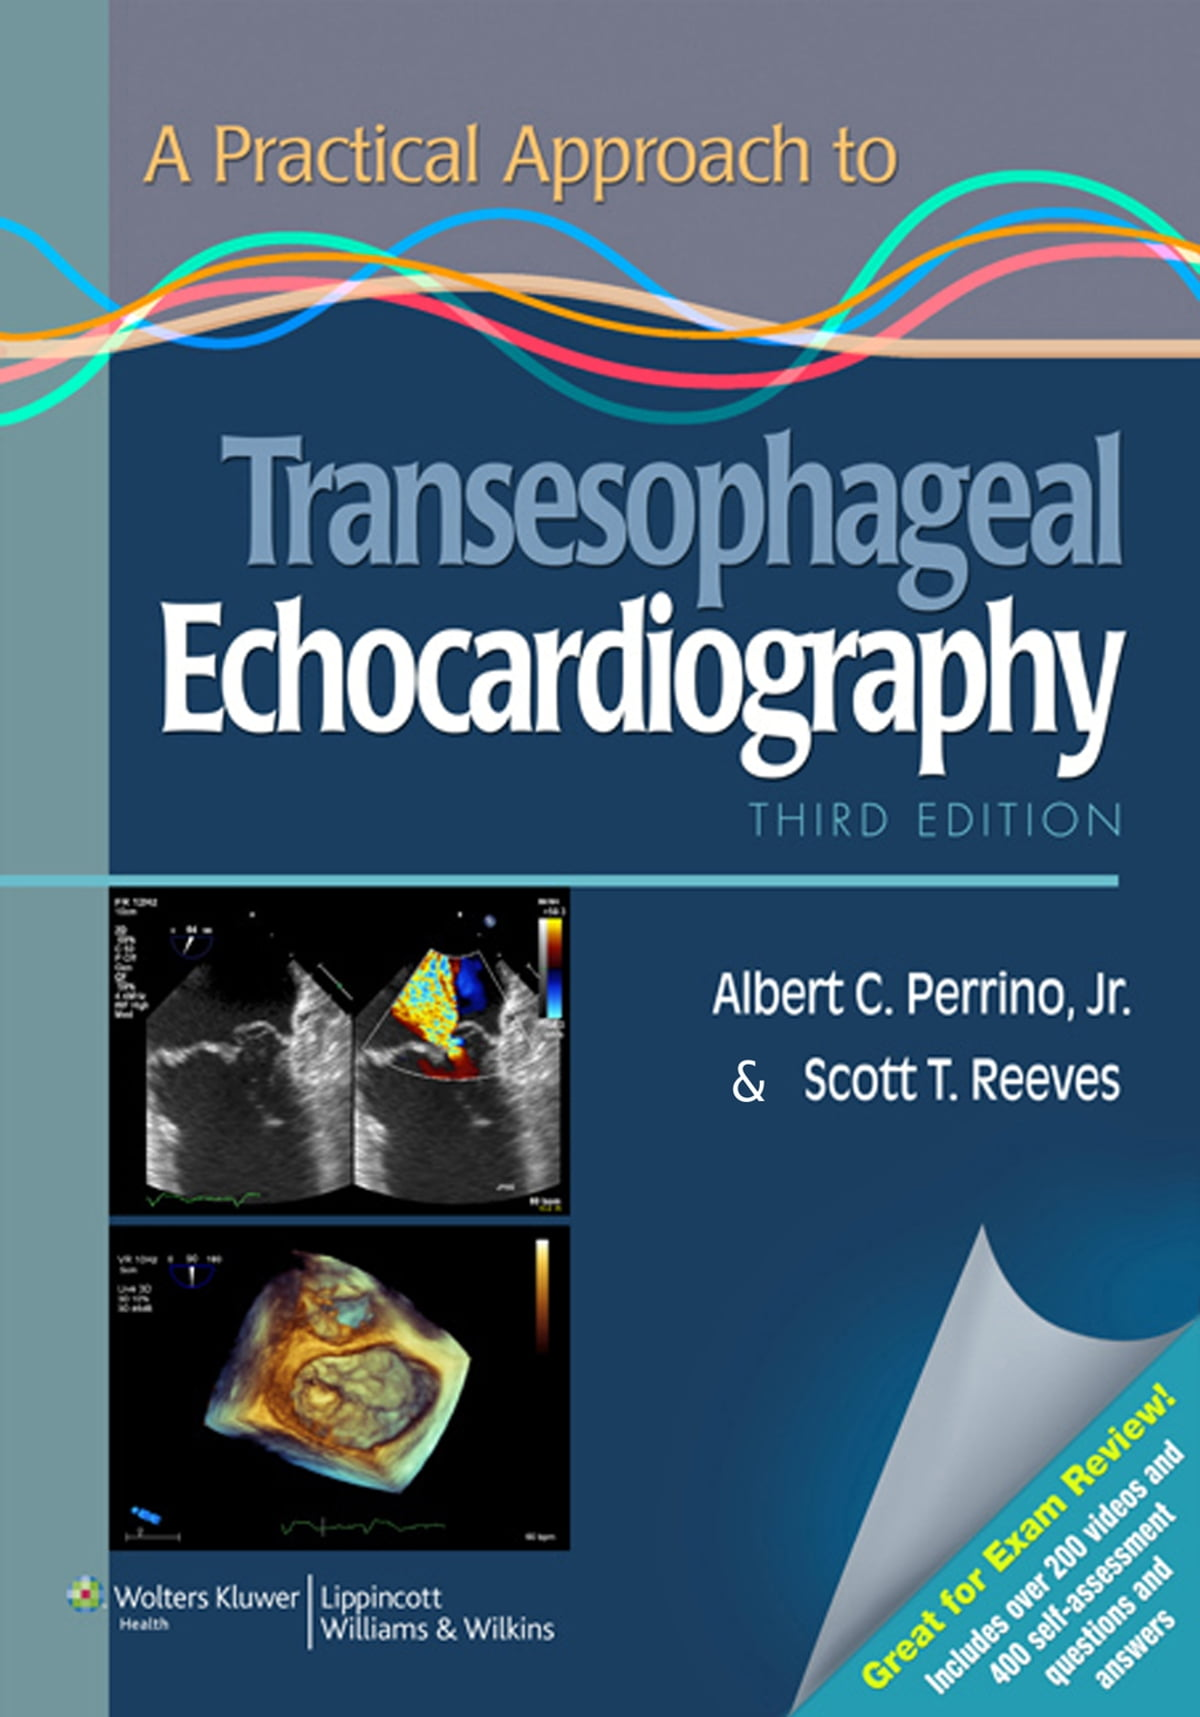 A Practical Approach to Transesophageal Echocardiography eBook by Albert C.  Perrino - 9781469830407 | Rakuten Kobo